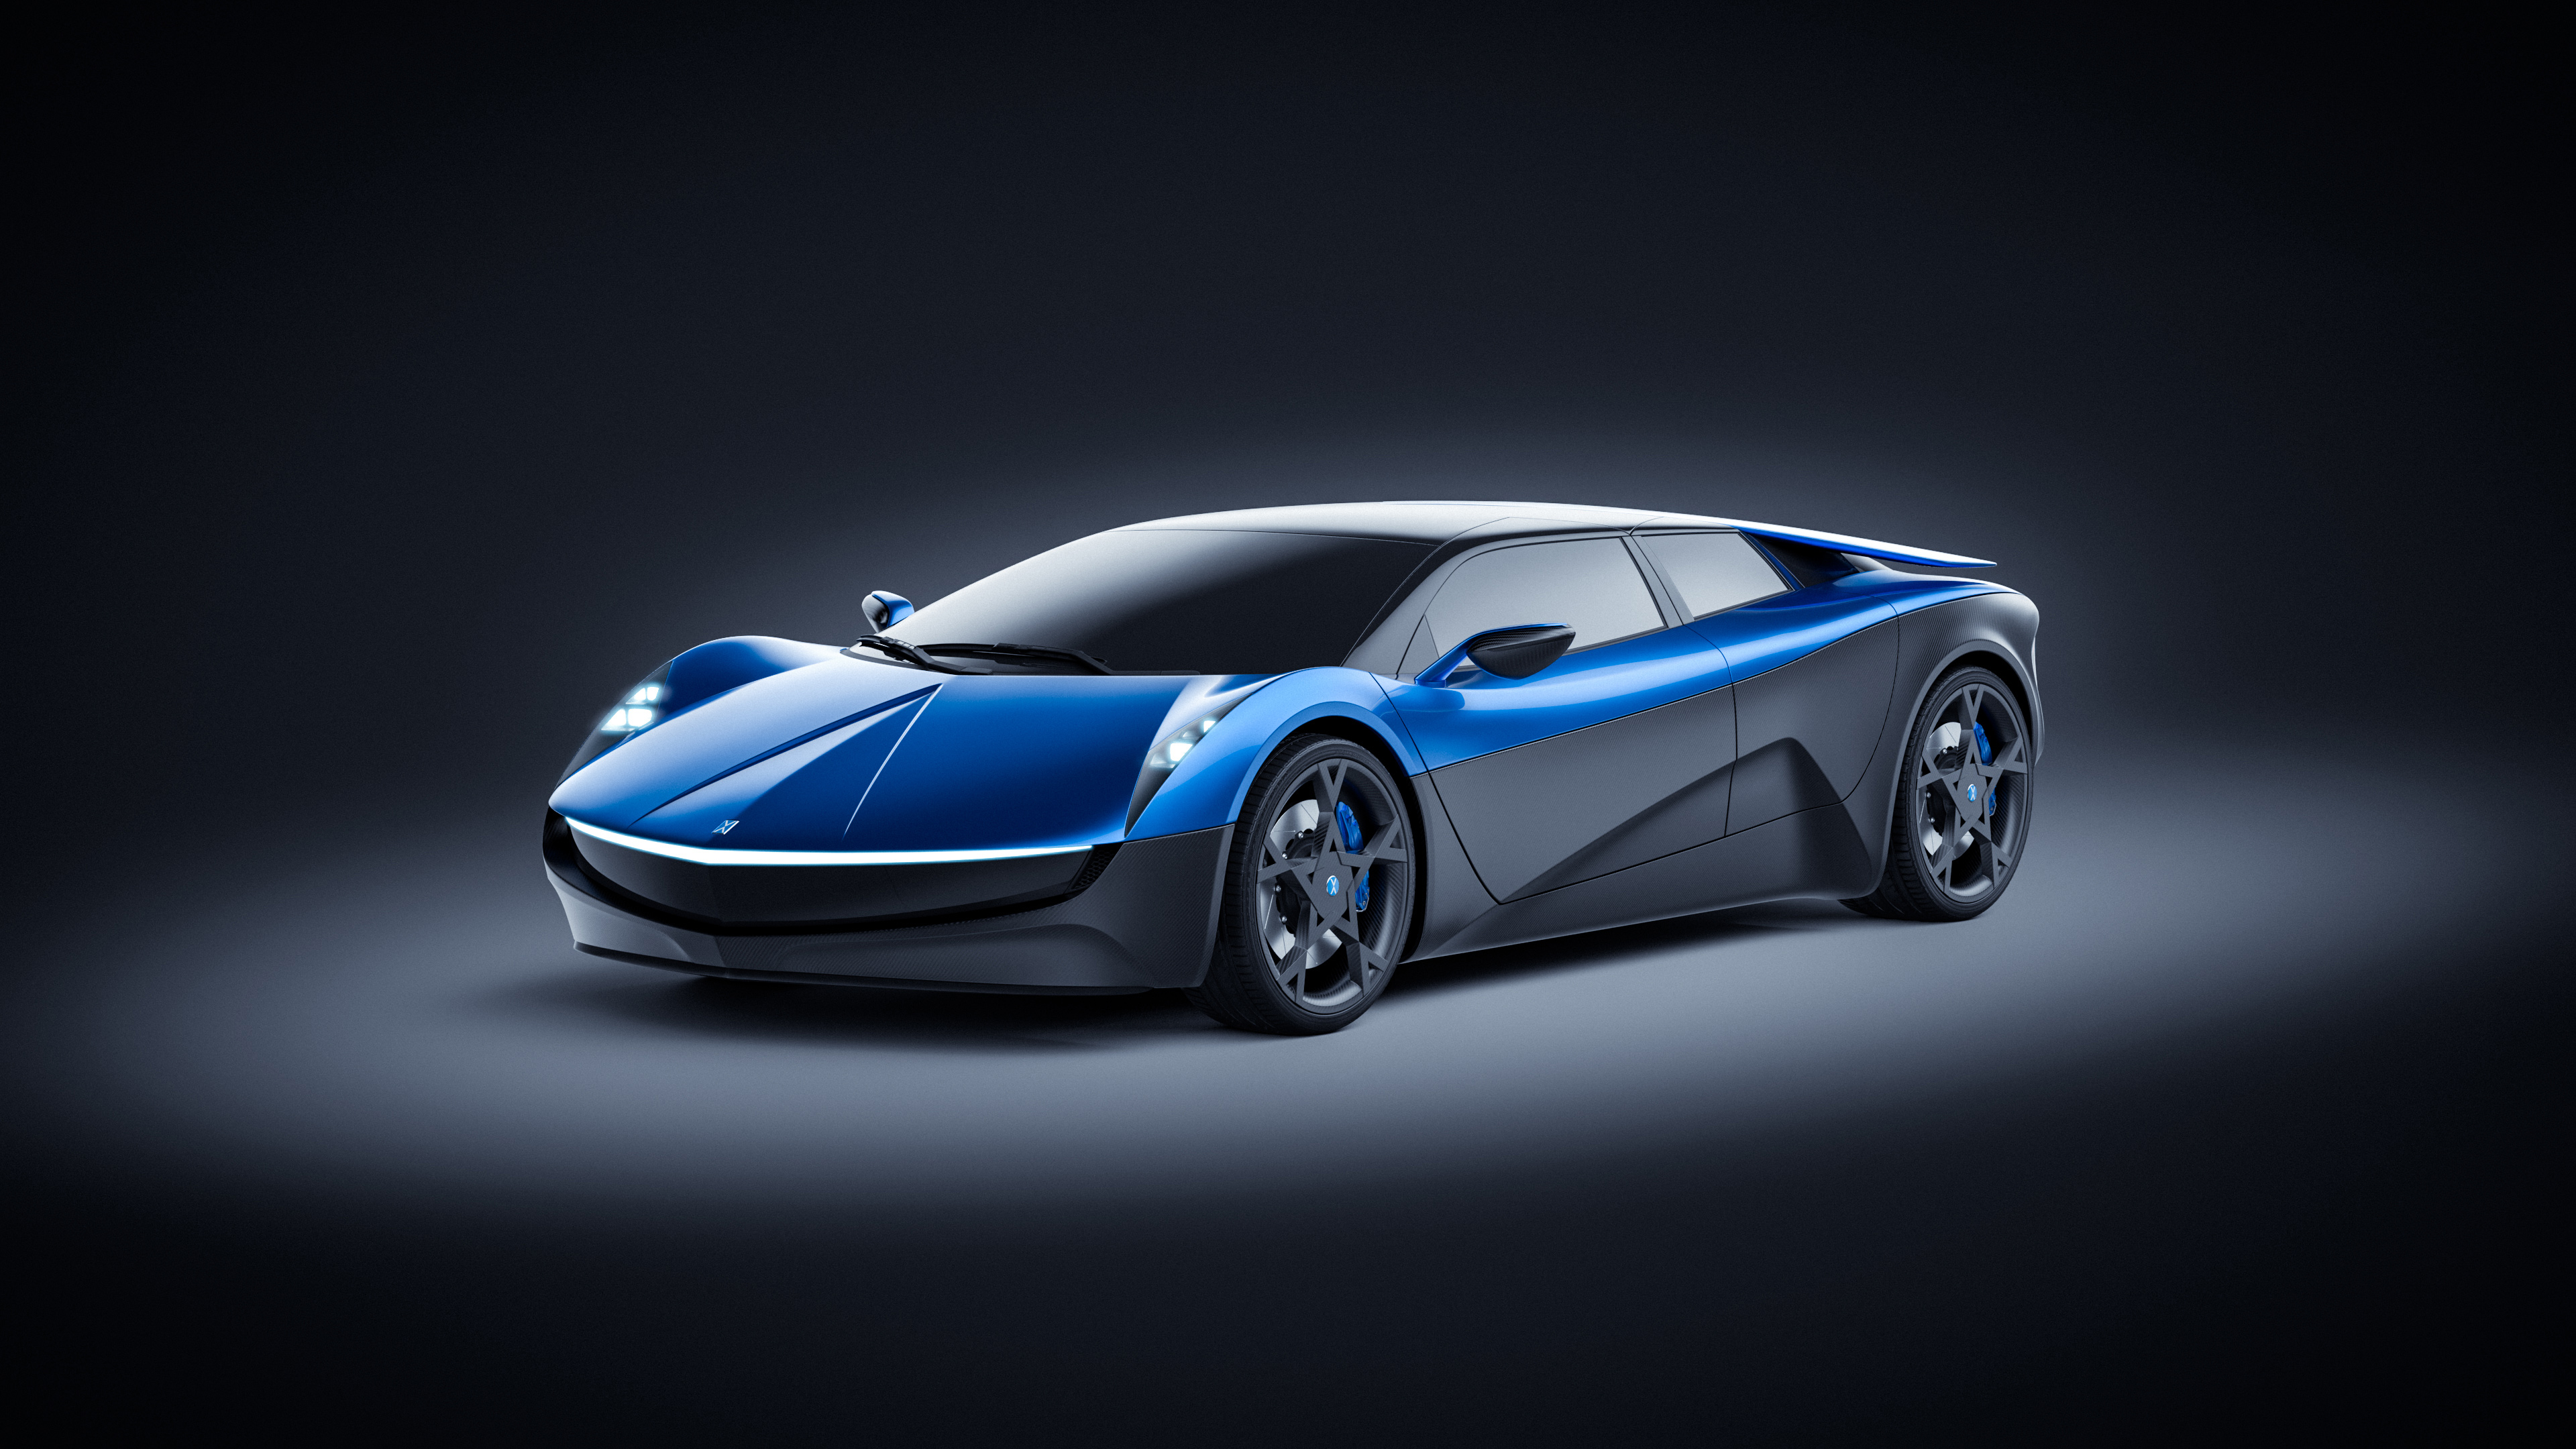 Elextra Electric Sedan Concept 4K Wallpaper